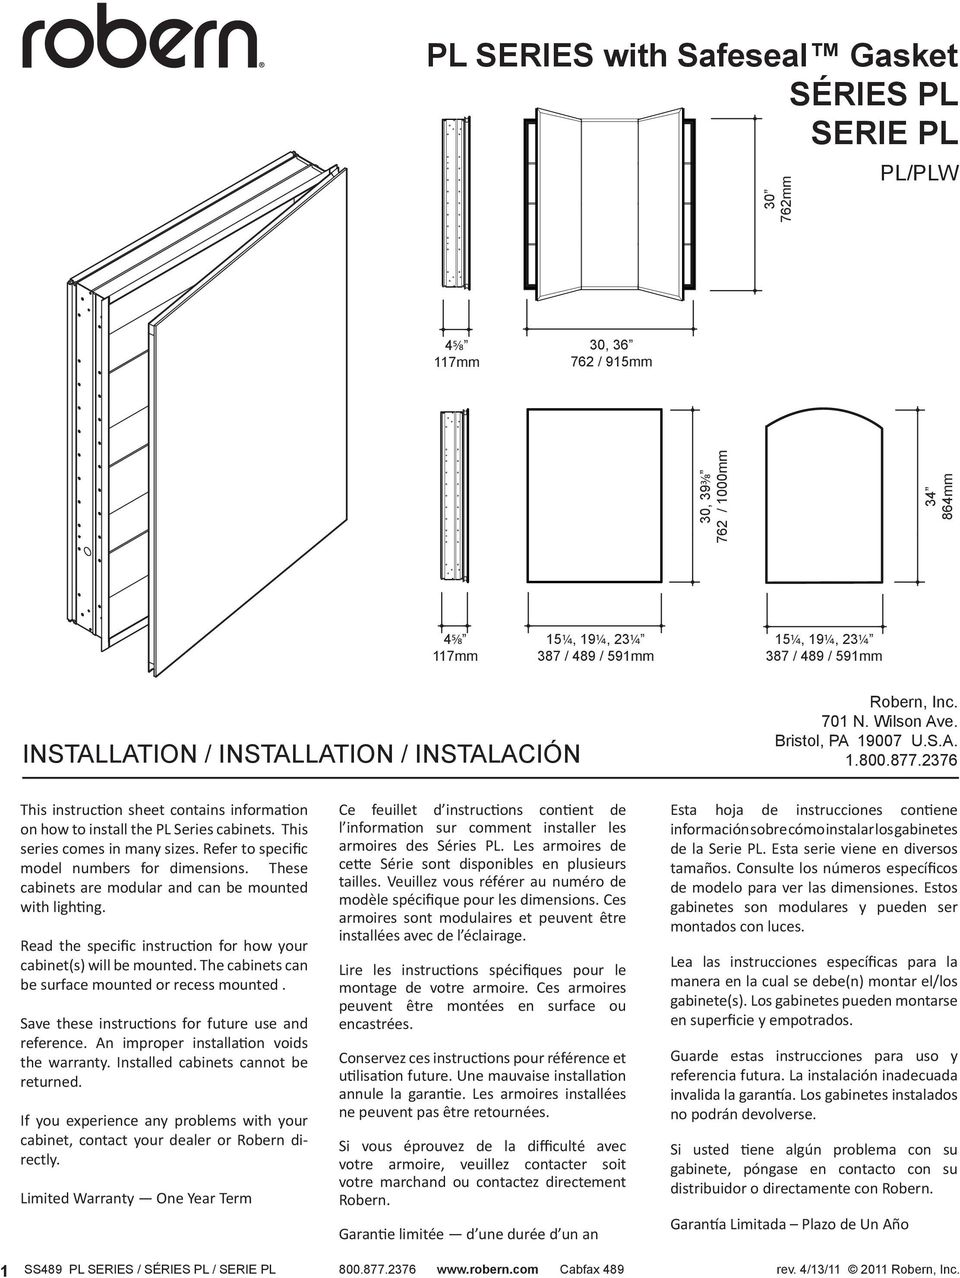 2376 This instruction sheet contains information on how to install the PL Series cabinets. This series comes in many sizes. Refer to specific model numbers for dimensions.